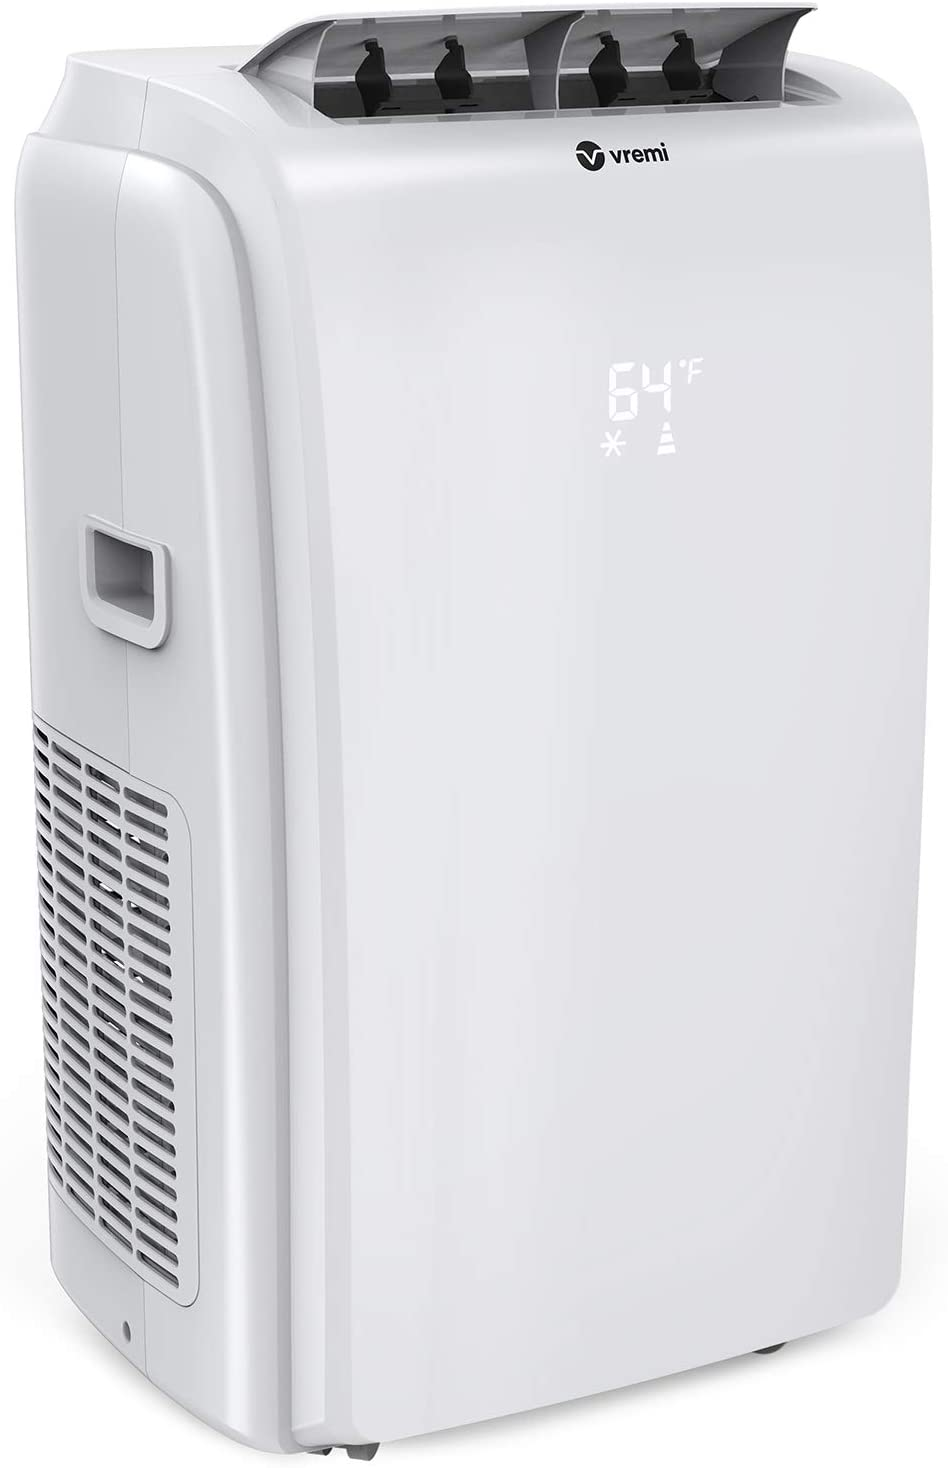 Vremi 12,000 BTU Portable Air Conditioner with Heat Function - Quiet Air Conditioning Machine for 450 to 550 Square Feet Rooms - LED Display Auto Shut Off and Dehumidifier - Remote Control Included